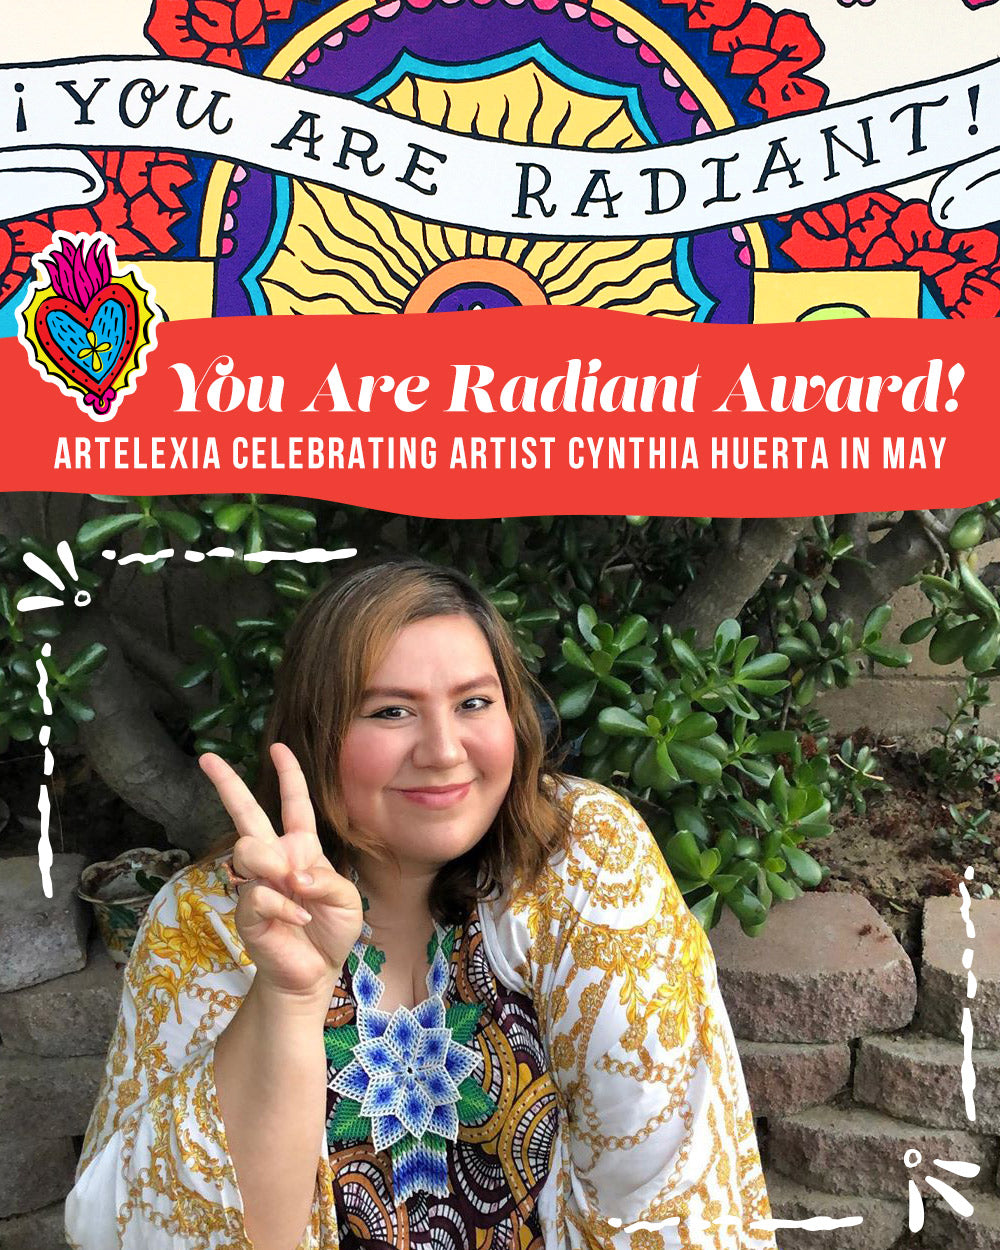 Artelexia's You Are Radiant Award Celebrating Artist Cynthia Huerta in May